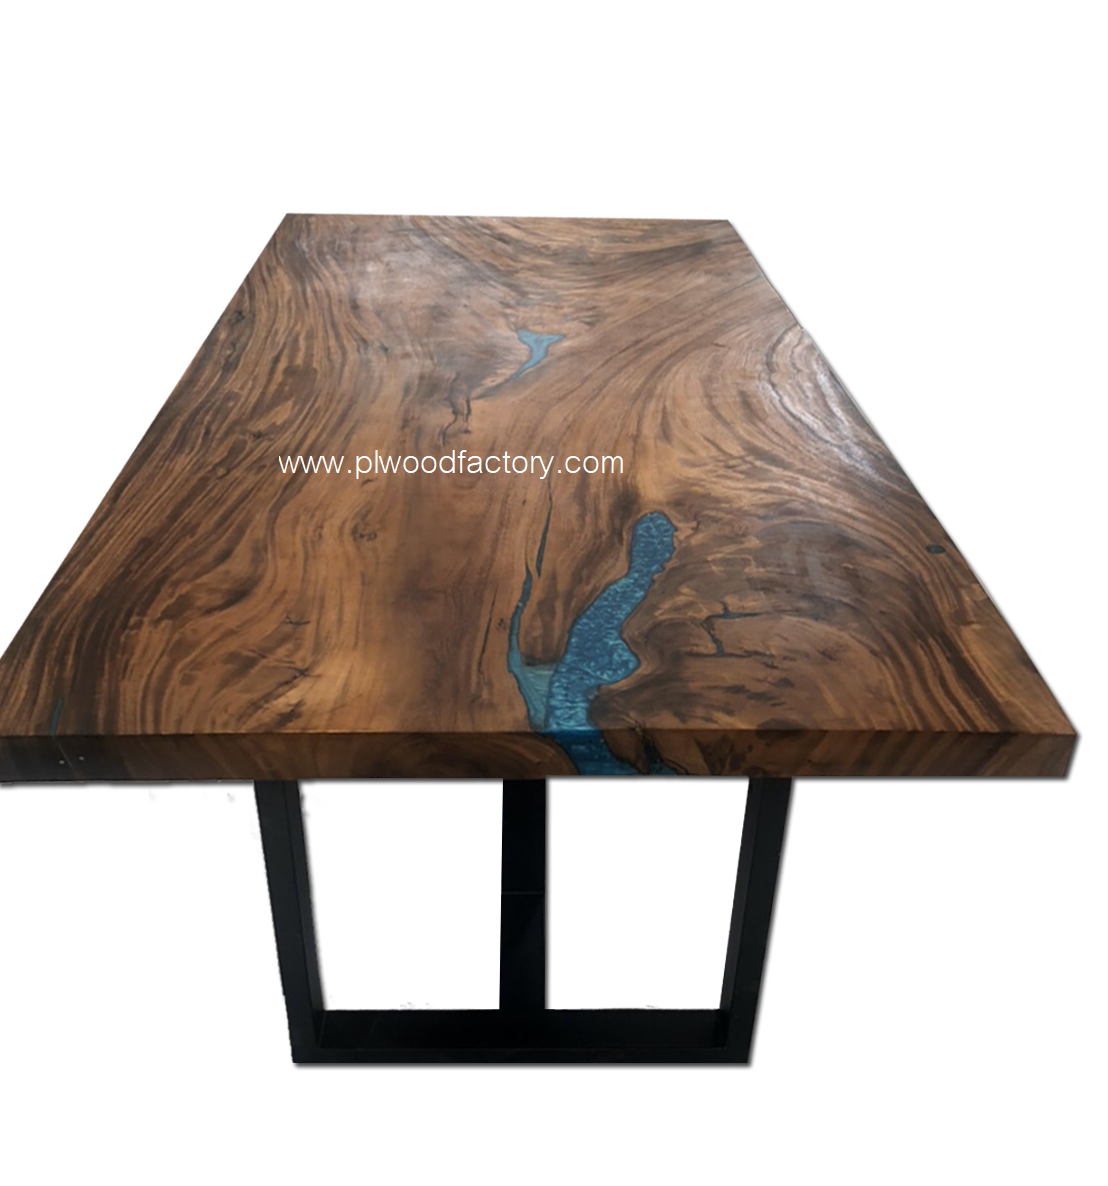 Acacia table with epoxy filled up the wood hole